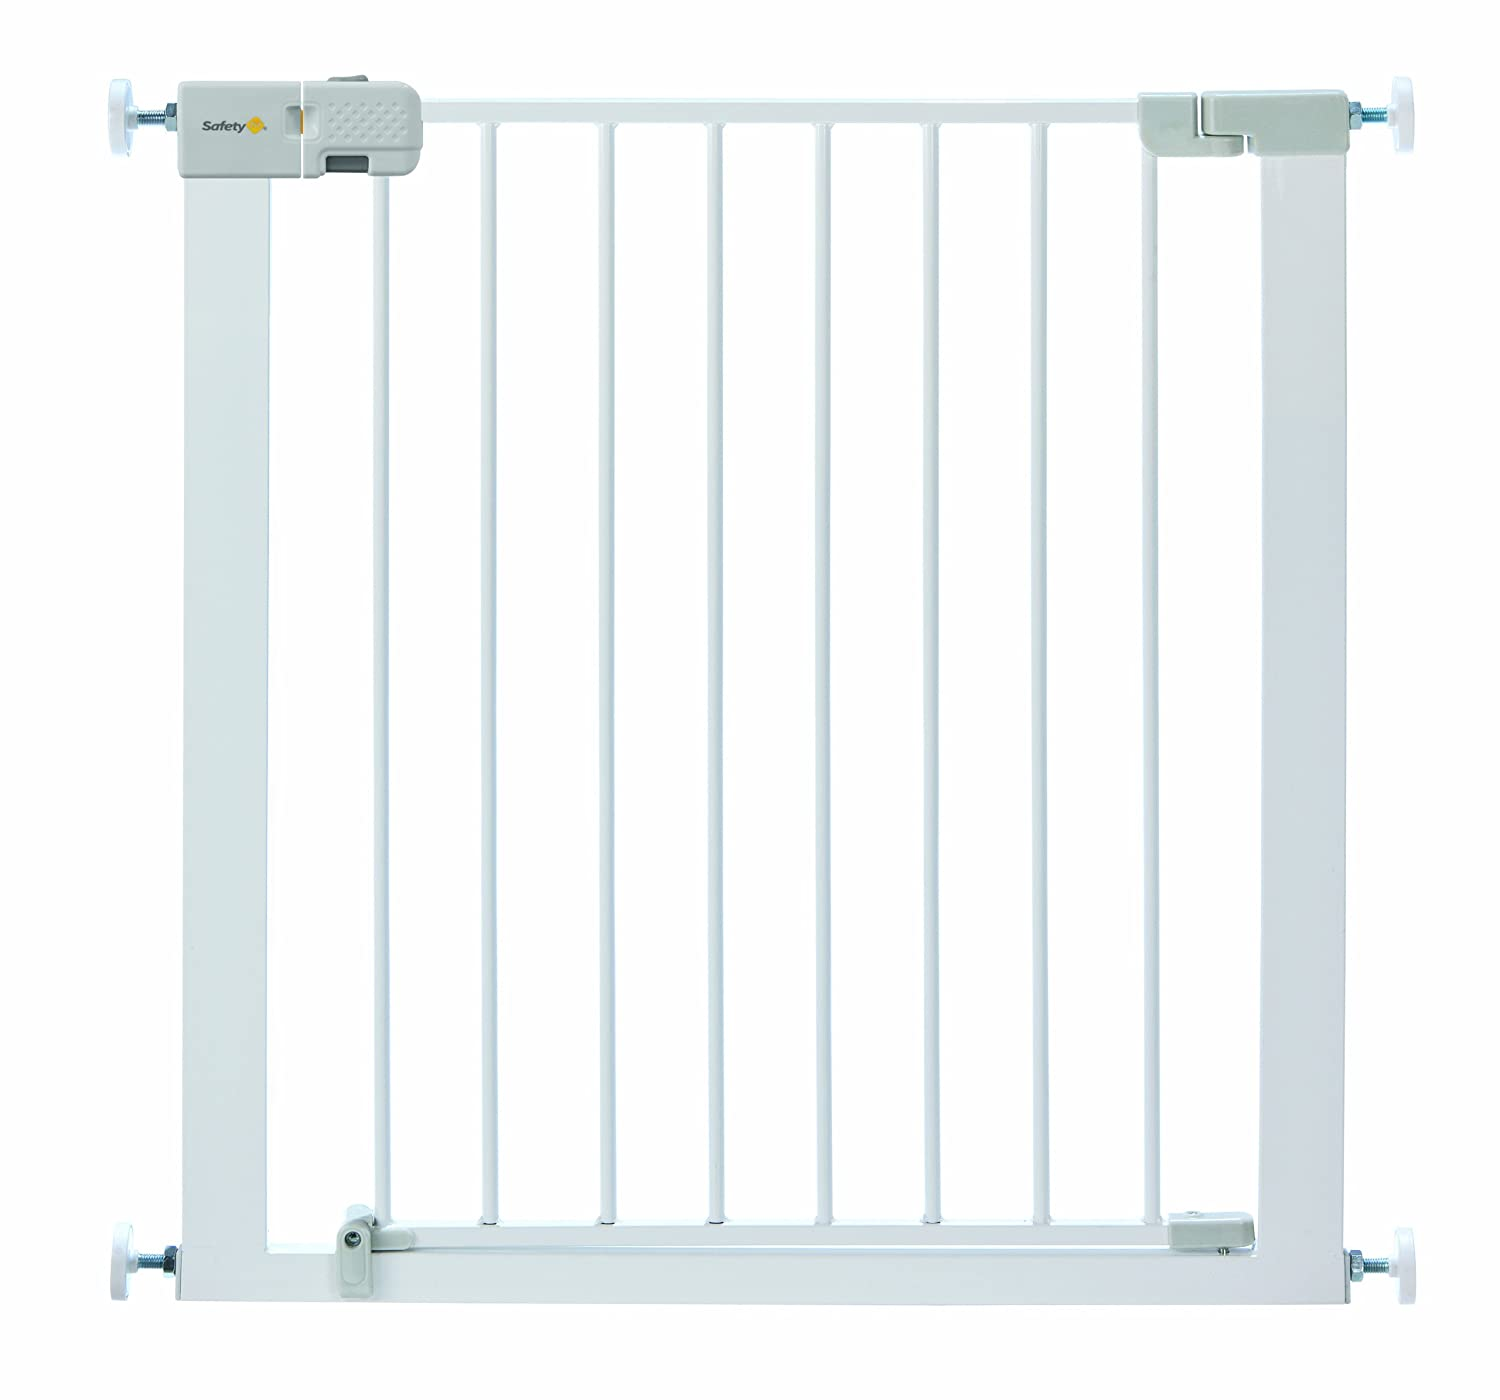 Safety 1st Simply Close Pressure Fit Metal Gate, White 24204317